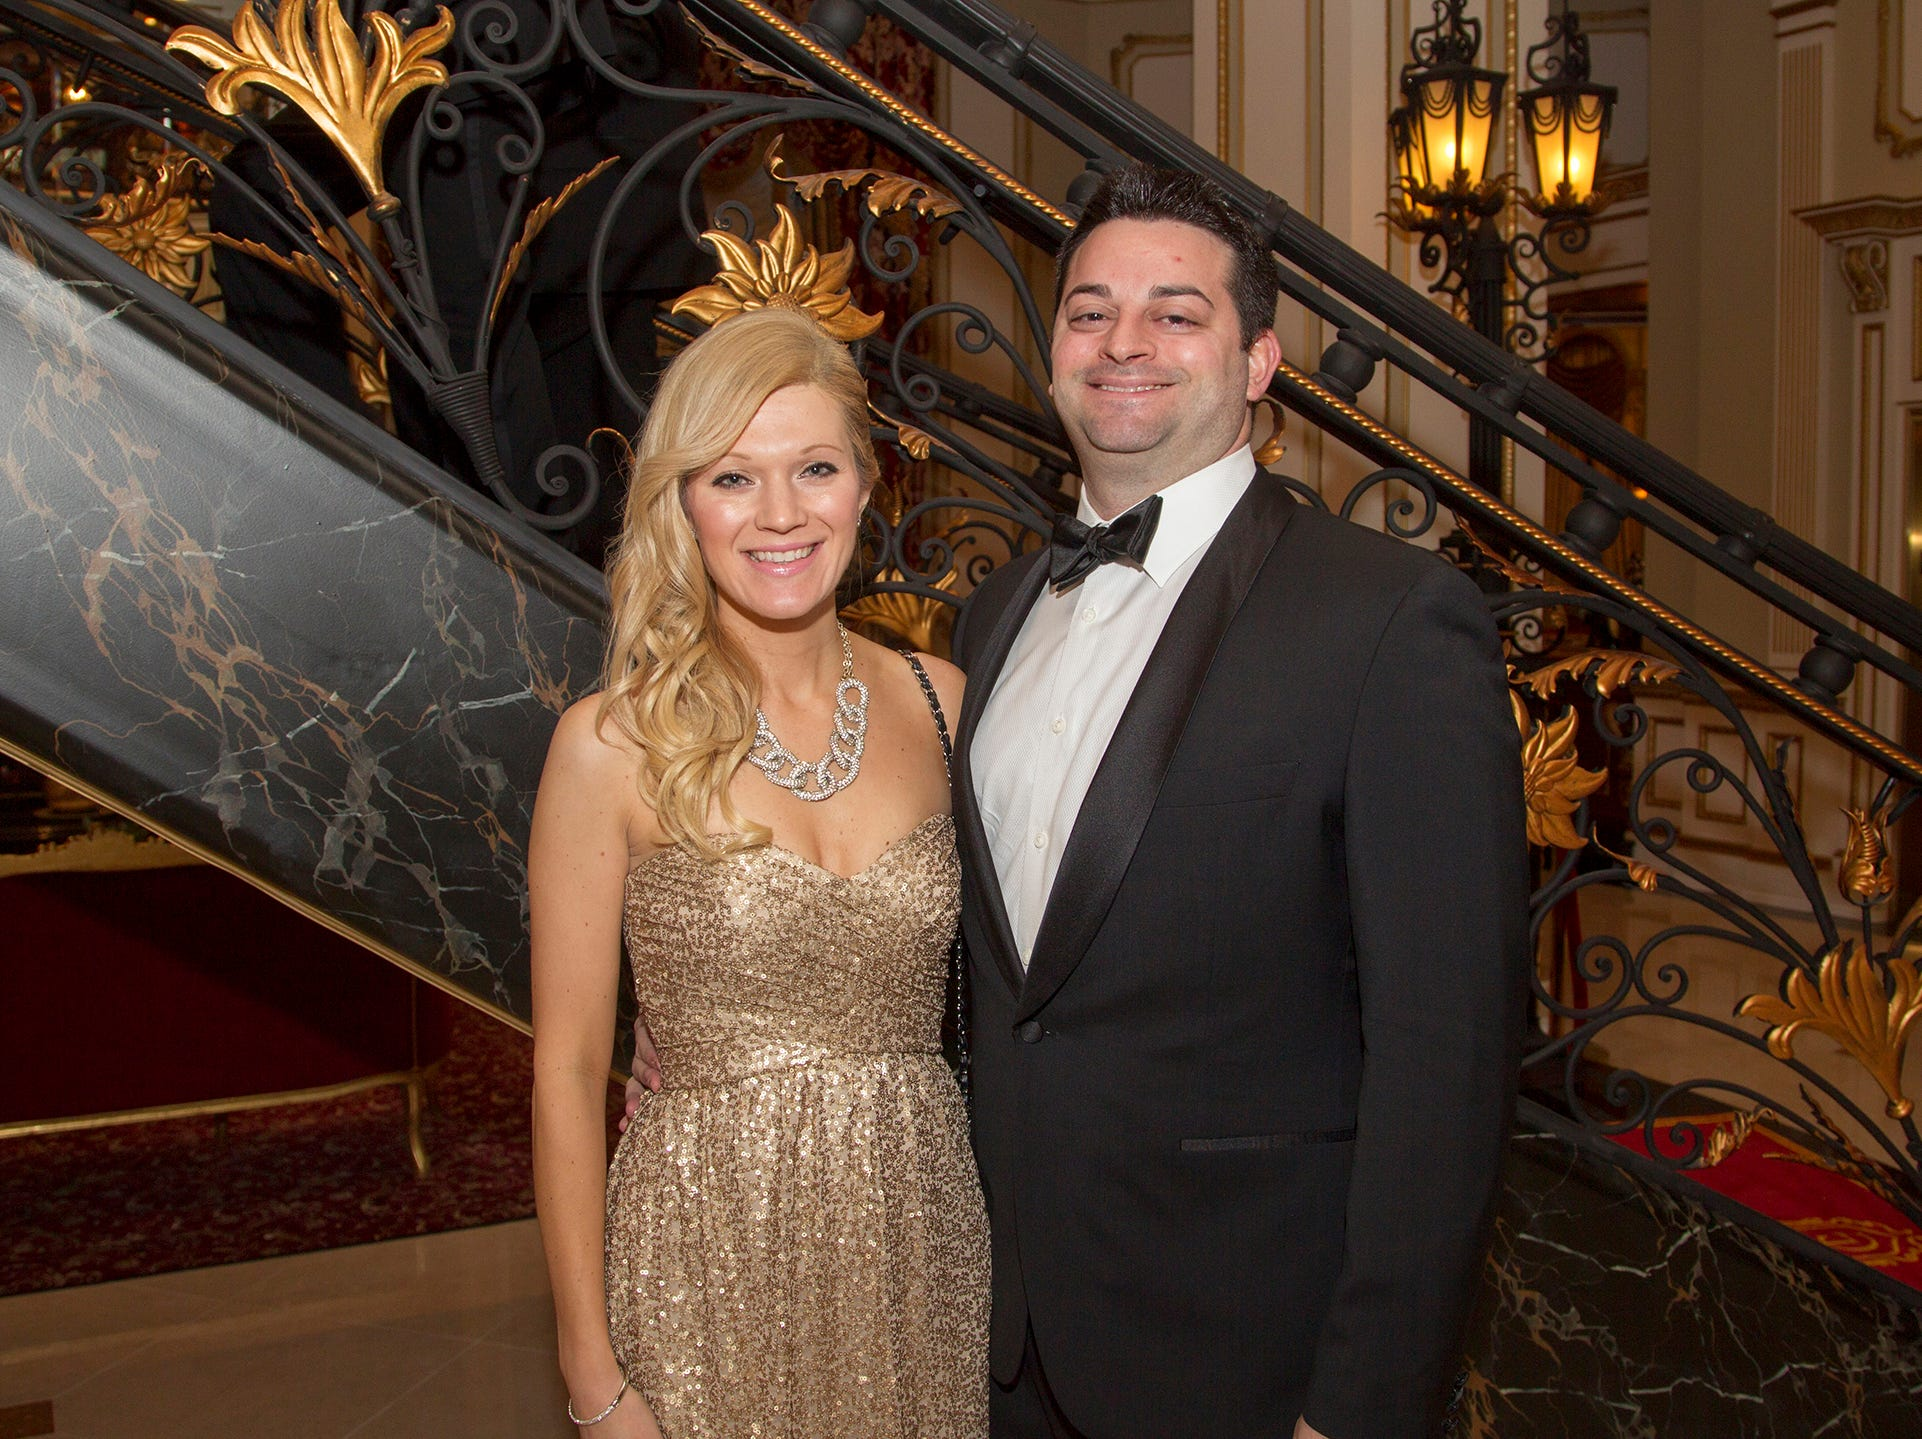 Rachel and Dr. Antonio Lasorsa. The 72nd Annual Valley Ball gala at The Legacy Castle in Pompton Plains. 11/16/2018